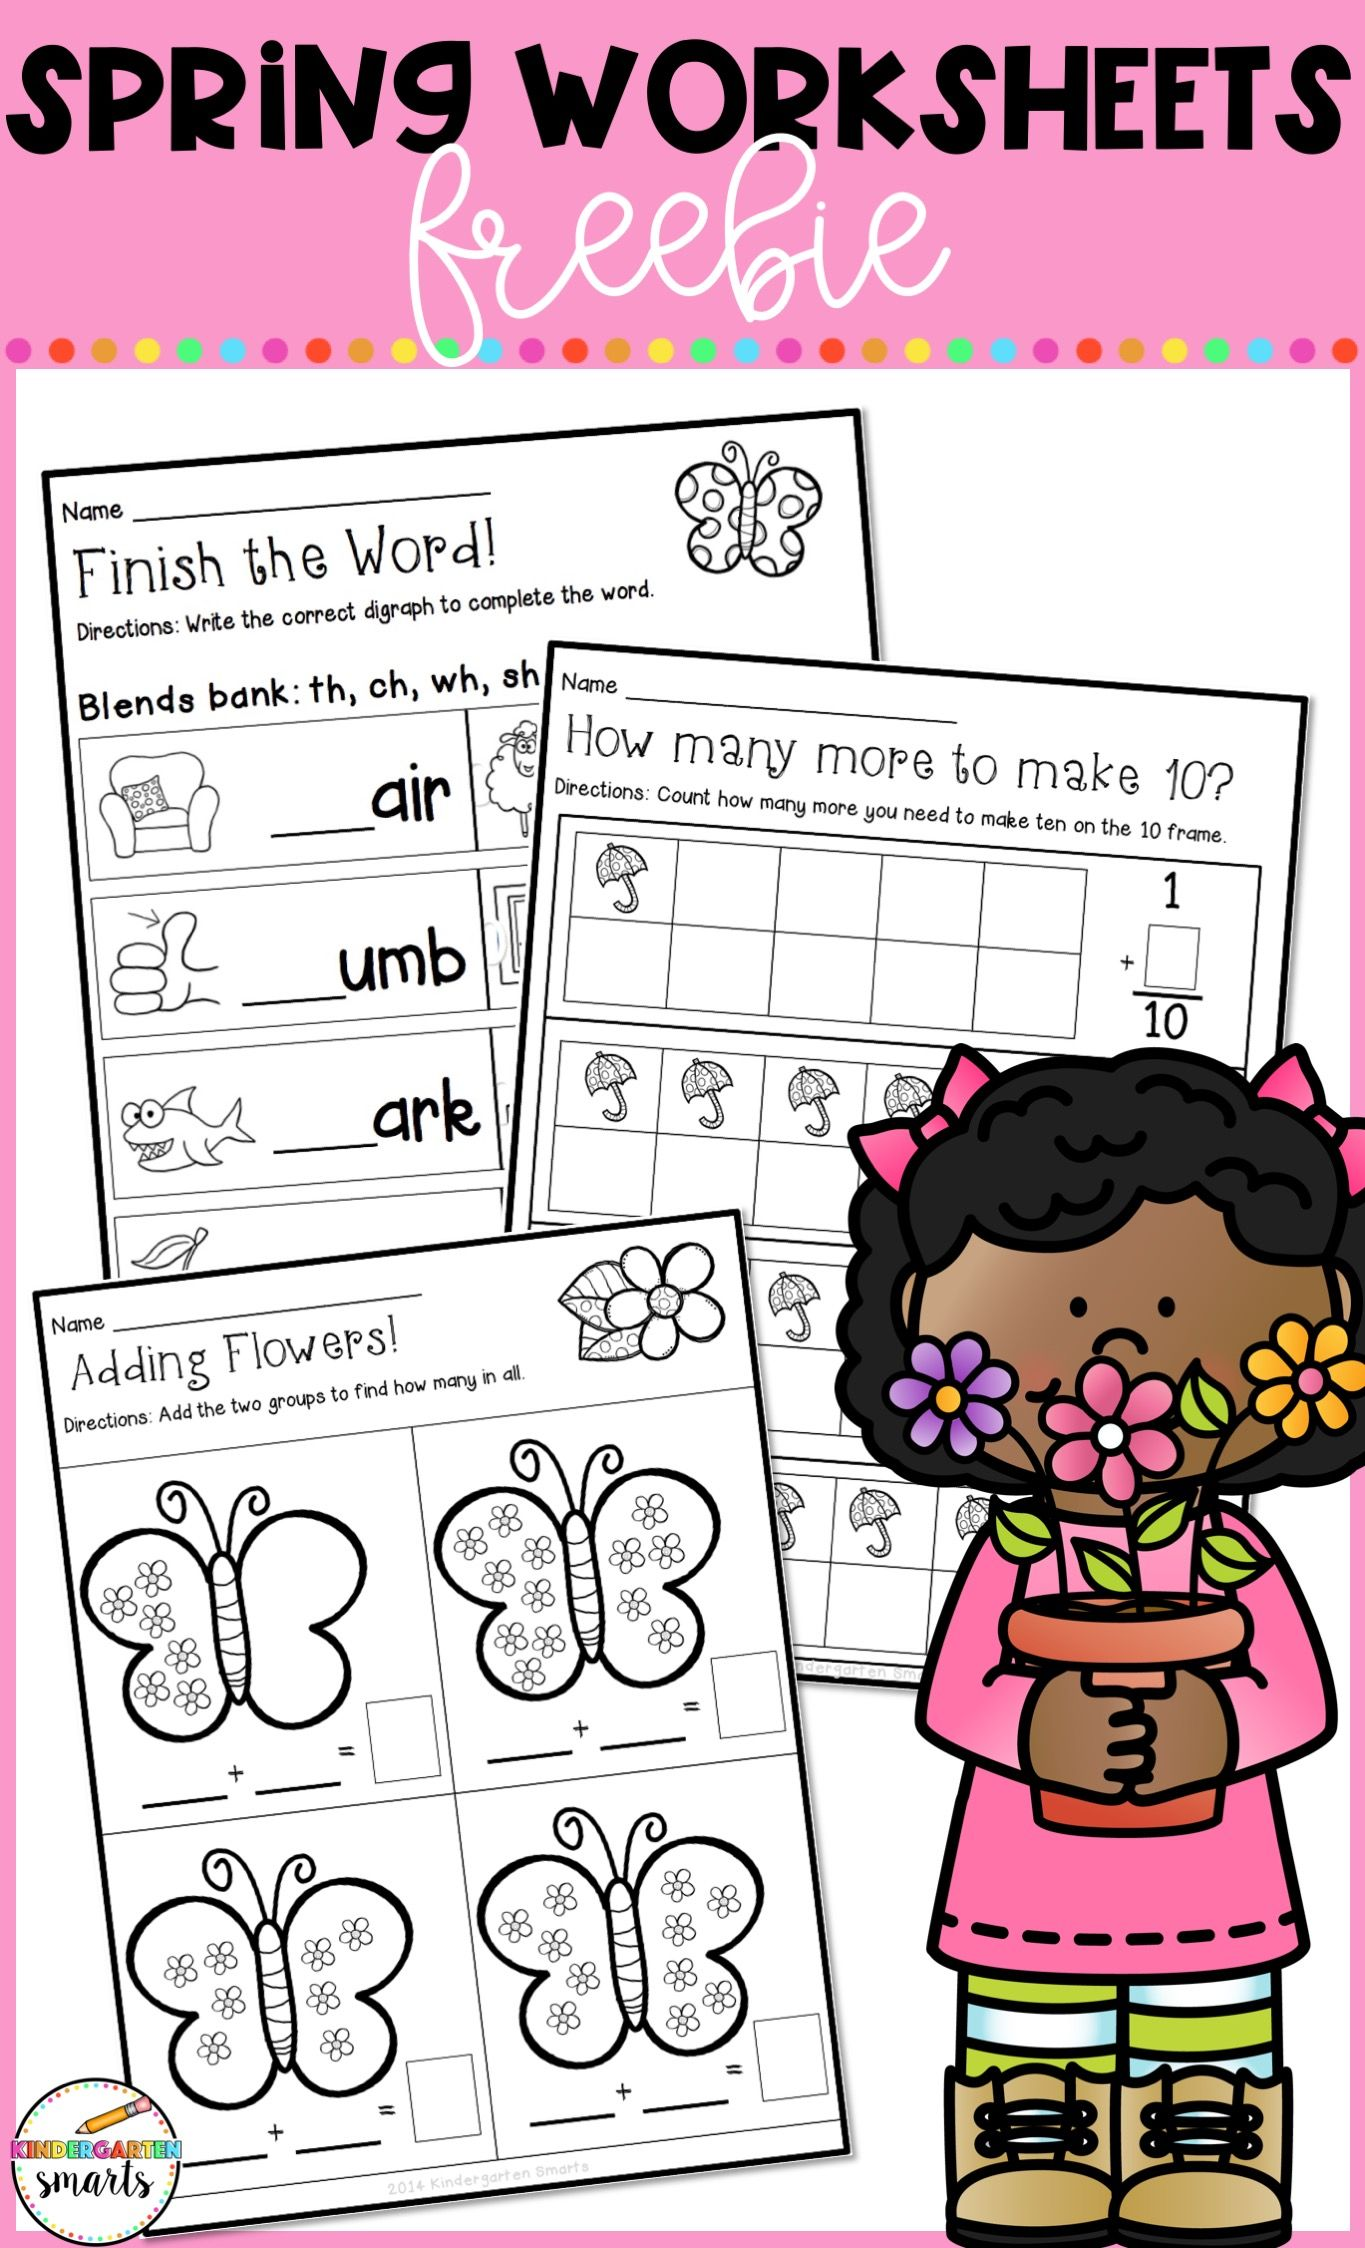 Spring Centers And Activities For Kindergartners Kindergarten Smarts Kindergarten Activities Spring Kindergarten Activities Spring Math [ 2248 x 1365 Pixel ]